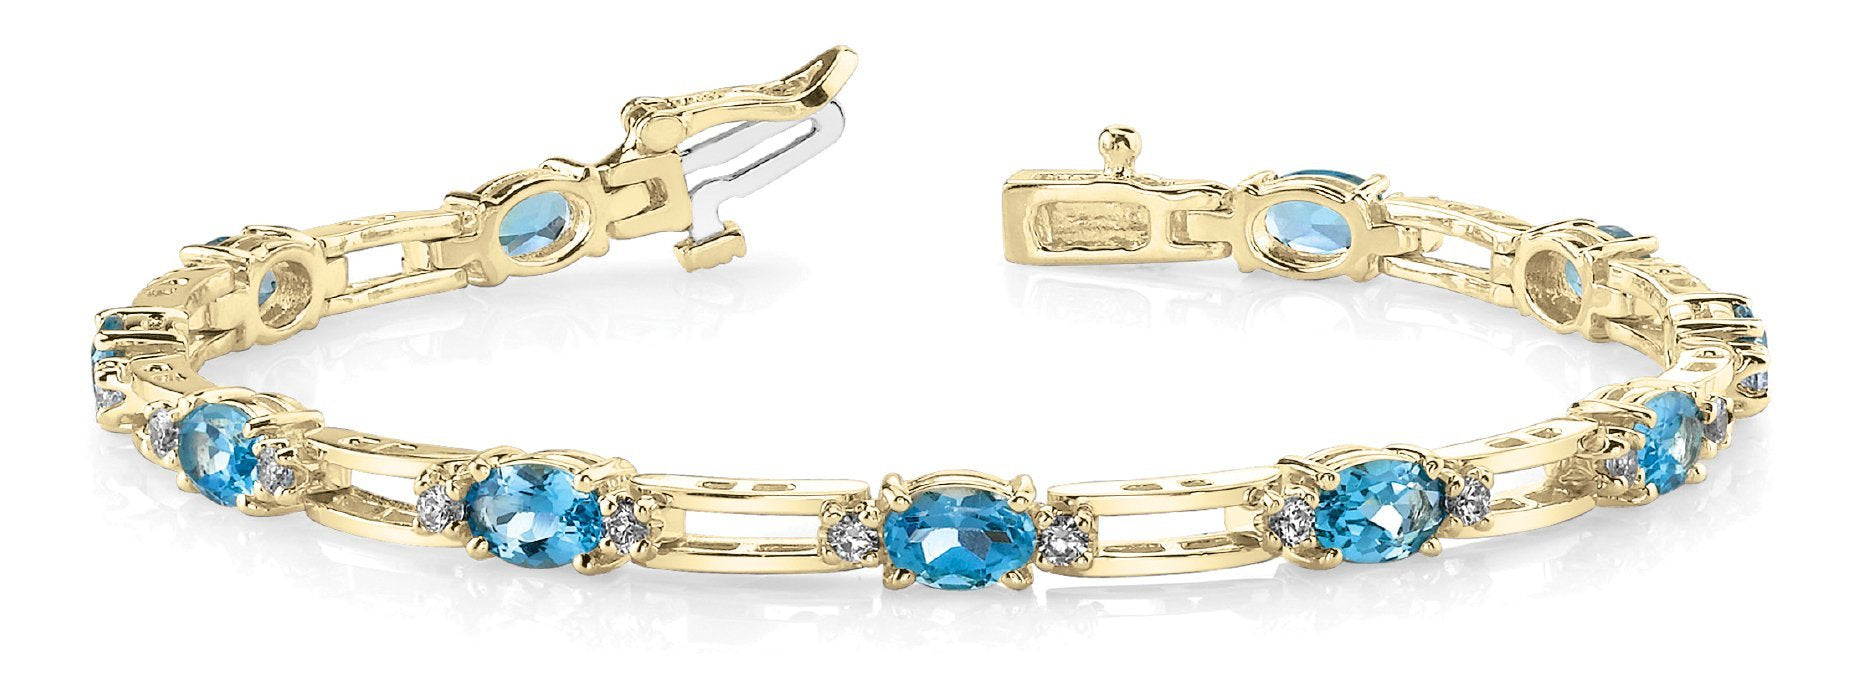 Blue Topaz 5.80ct & Diamond 0.49ct Bracelet - 14kt Yellow Gold